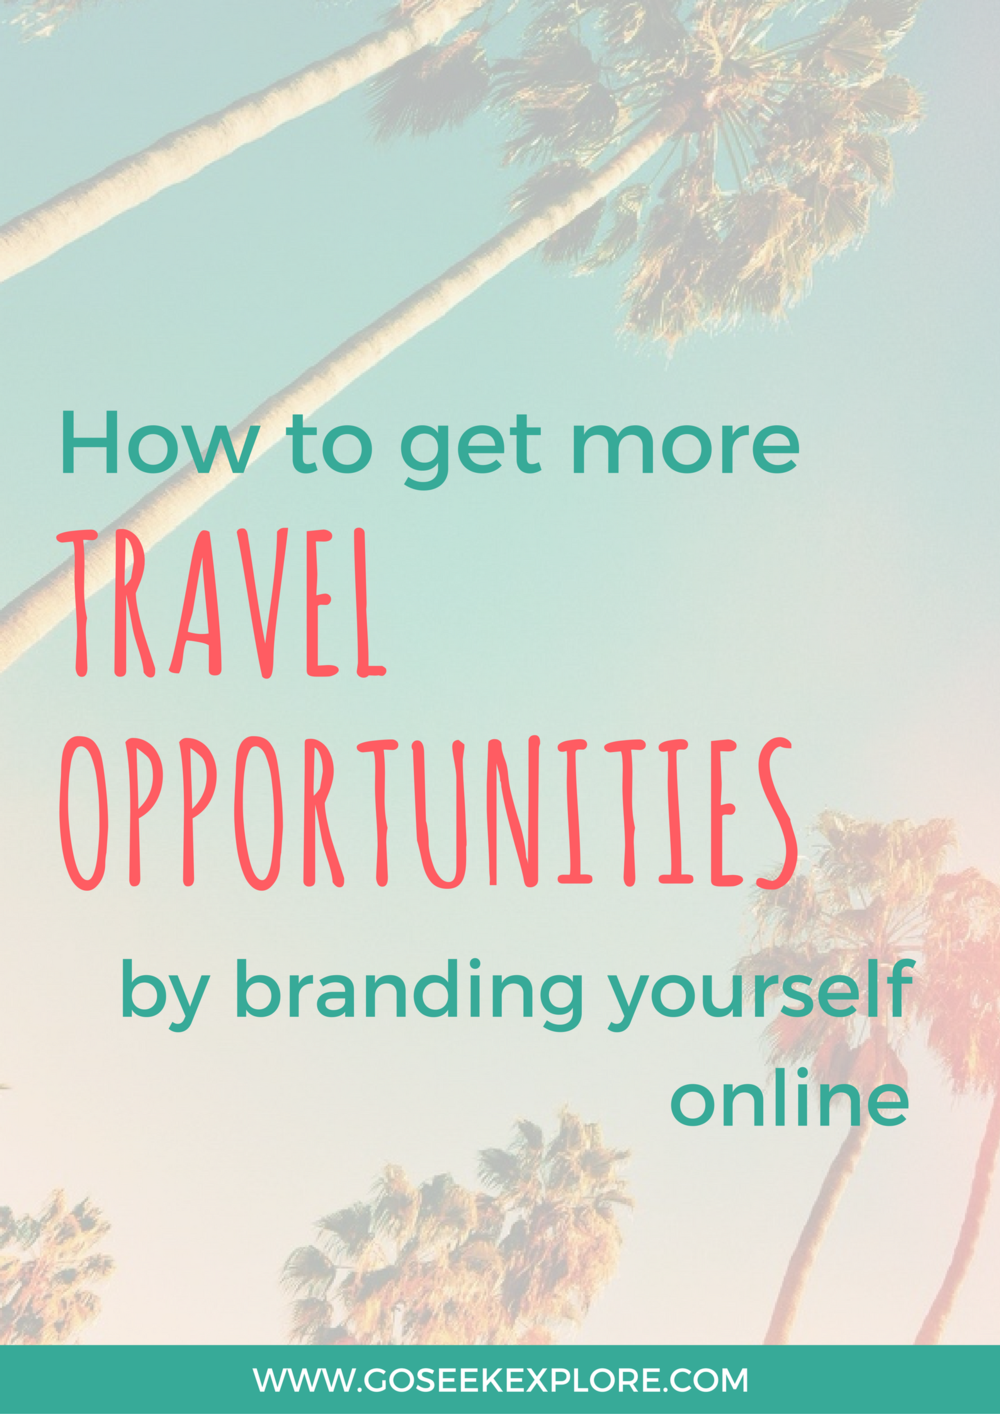 How you can brand yourself online to get more travel opportunities